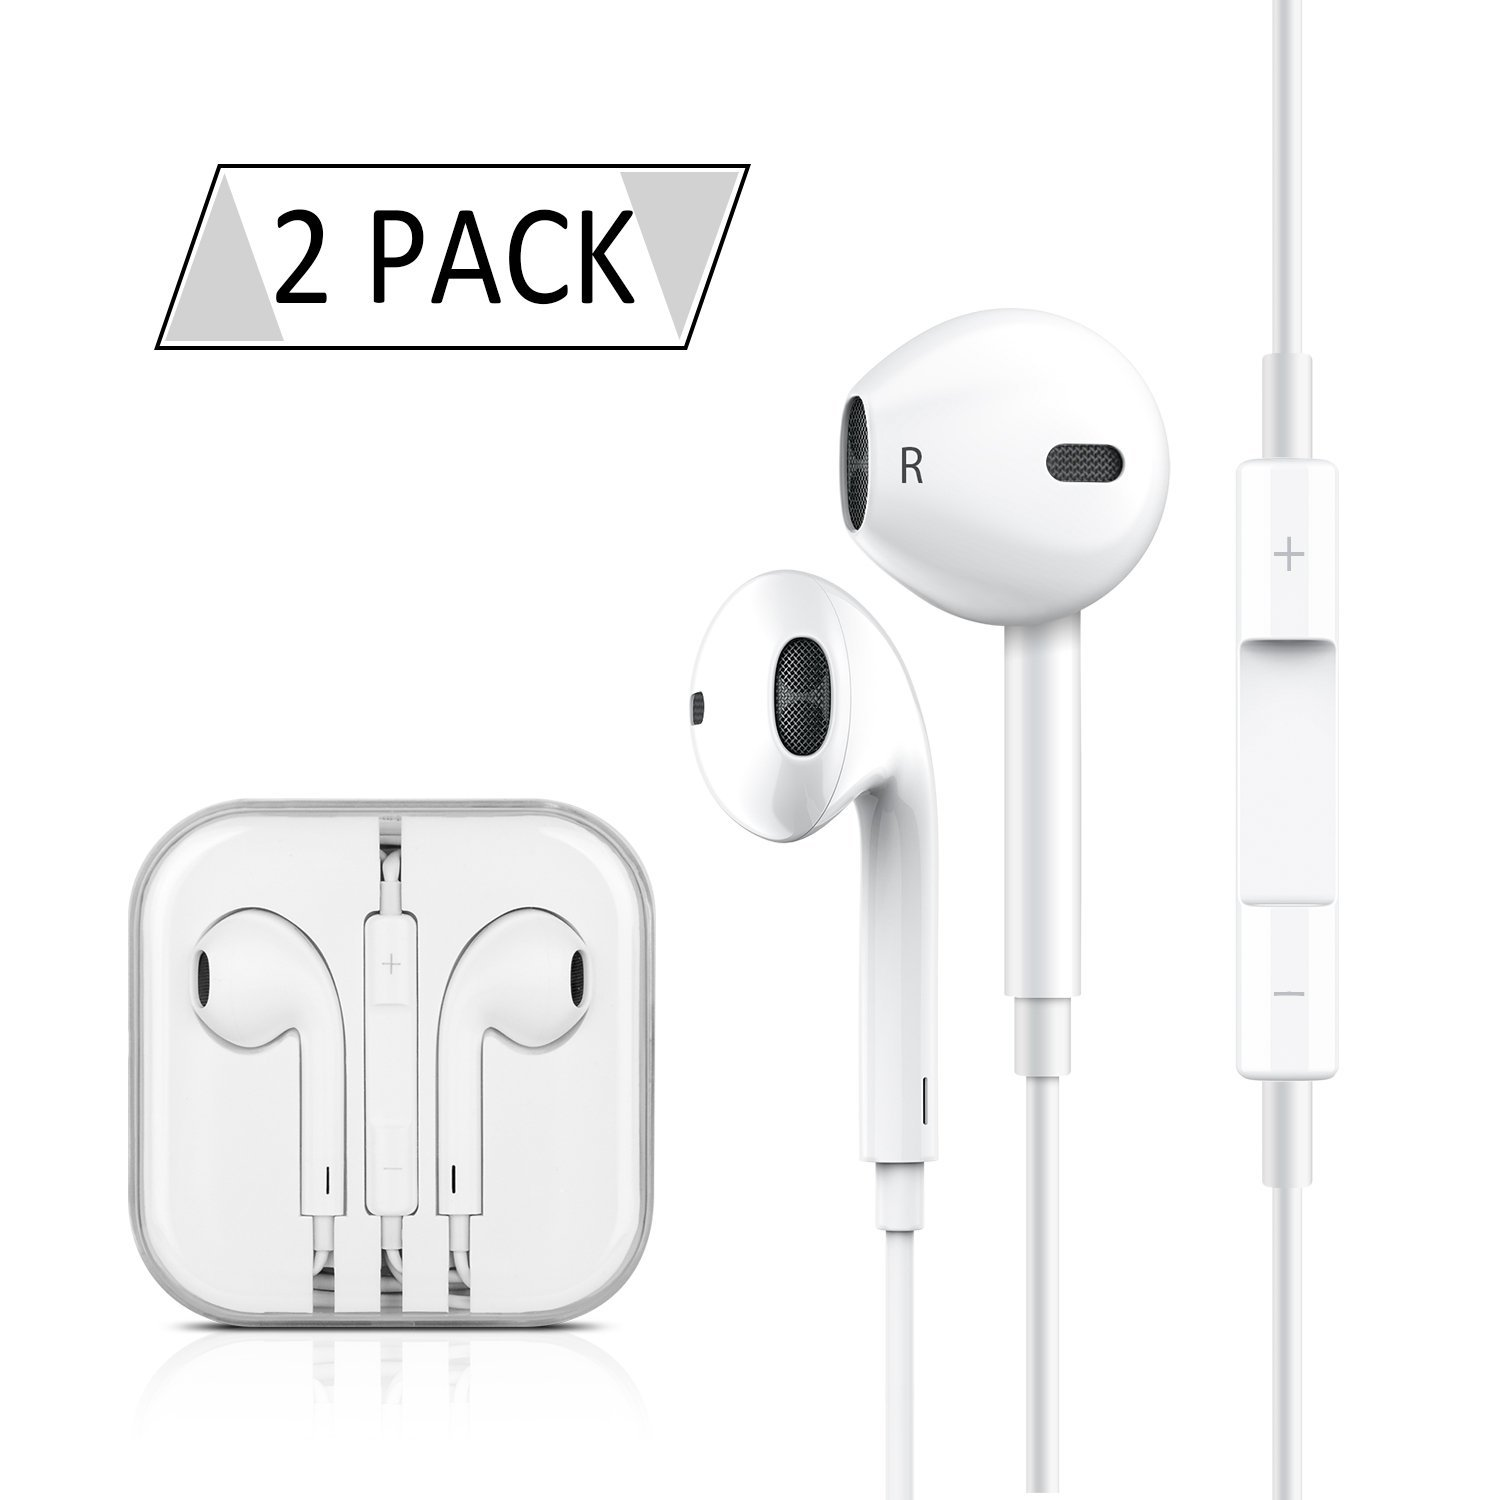 2-PACK Premium Earphones/Earbuds/Headphones/Earpods with Stereo Mic&Remote Control for iPhone iPad iPod Samsung Galaxy and More Android Smartphones Compatible With 3.5 mm Headphone【White】